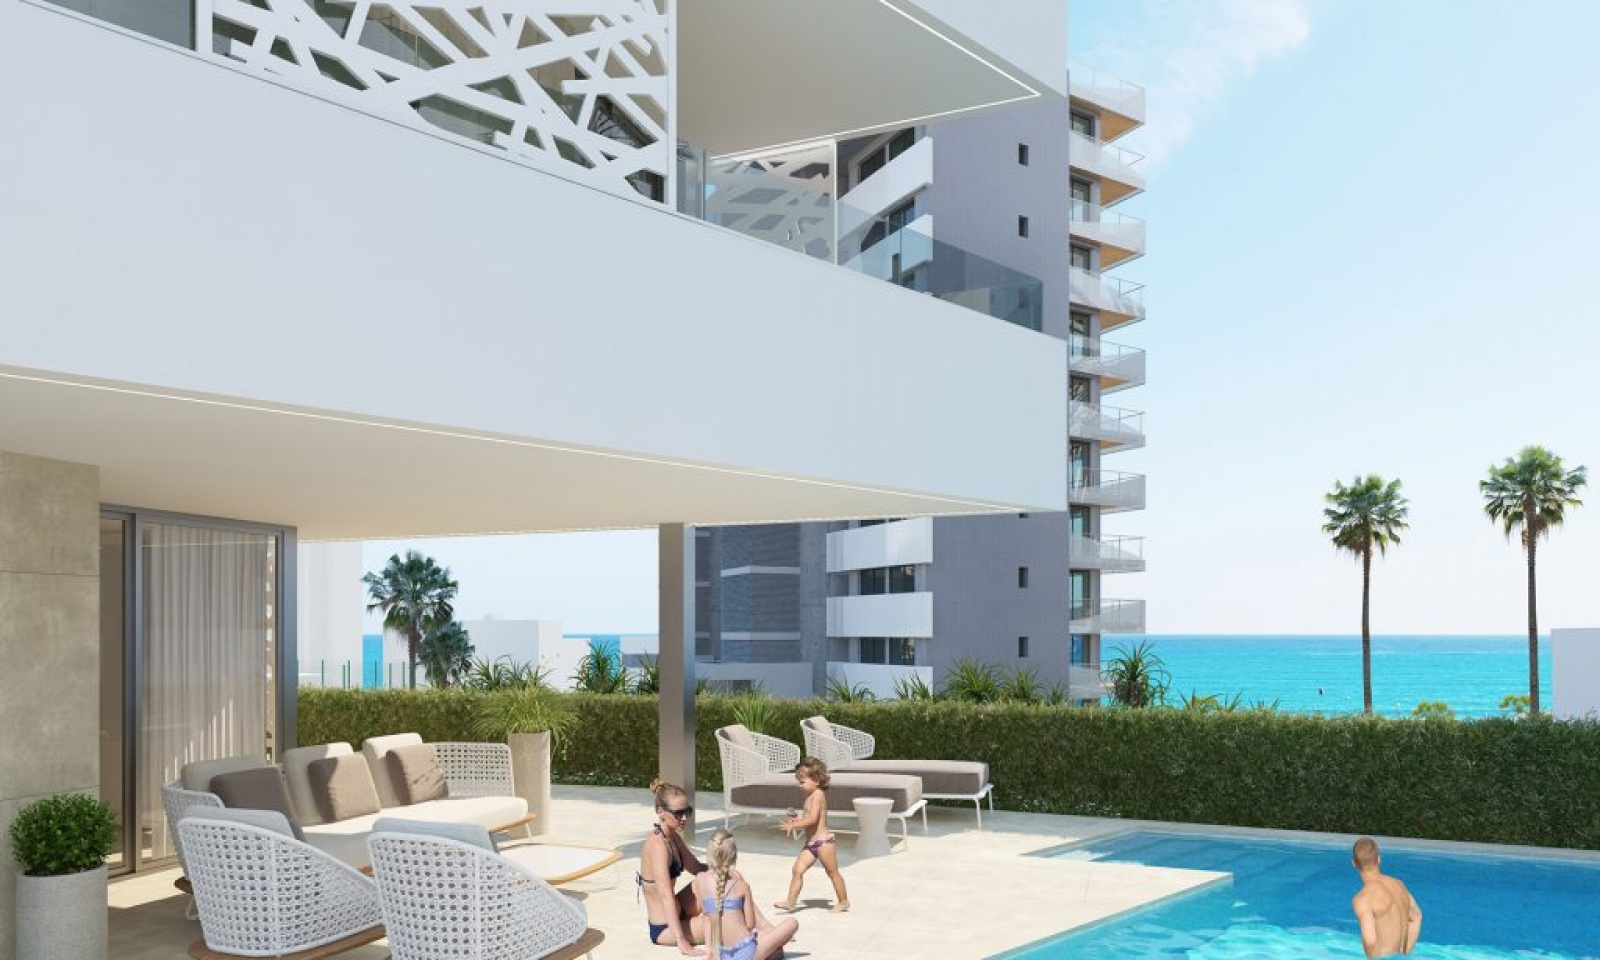 We are delighted to present SIDI villas in playa San Juan, Alicante. The project will be launched in late spring 2021. It is a project of exclusive independent villas. Our builder is doing everything to make your life as relaxed as possible for you to enjoy. They are even offering services as keyholding service, home cleaning, home maintenance and garden maintenance. Playa San Juan is an excellent location with beaches, golf courses and nature around. This beautiful villa has three bedrooms and four bathrooms. The ground floor is designed with an open plan between the kitchen and the spacious living room with access to the terraces all around. On the first floor you find two master bedrooms en-suit with their own walk in closets as well. One of the master bedrooms also have their own balcony. An additional guestroom and an additional bathroom. There is also a multipurpose room that you can use as a second living room. In the basement you have your own garage with room for three vehicles with pre-installation for electric charge of course. The villa comes with a private garden, a pool and a big terrace where you can sit back and relax and enjoy the view of the ocean and the sunset. Please contact us for more information and you are one step closer to your dream house!